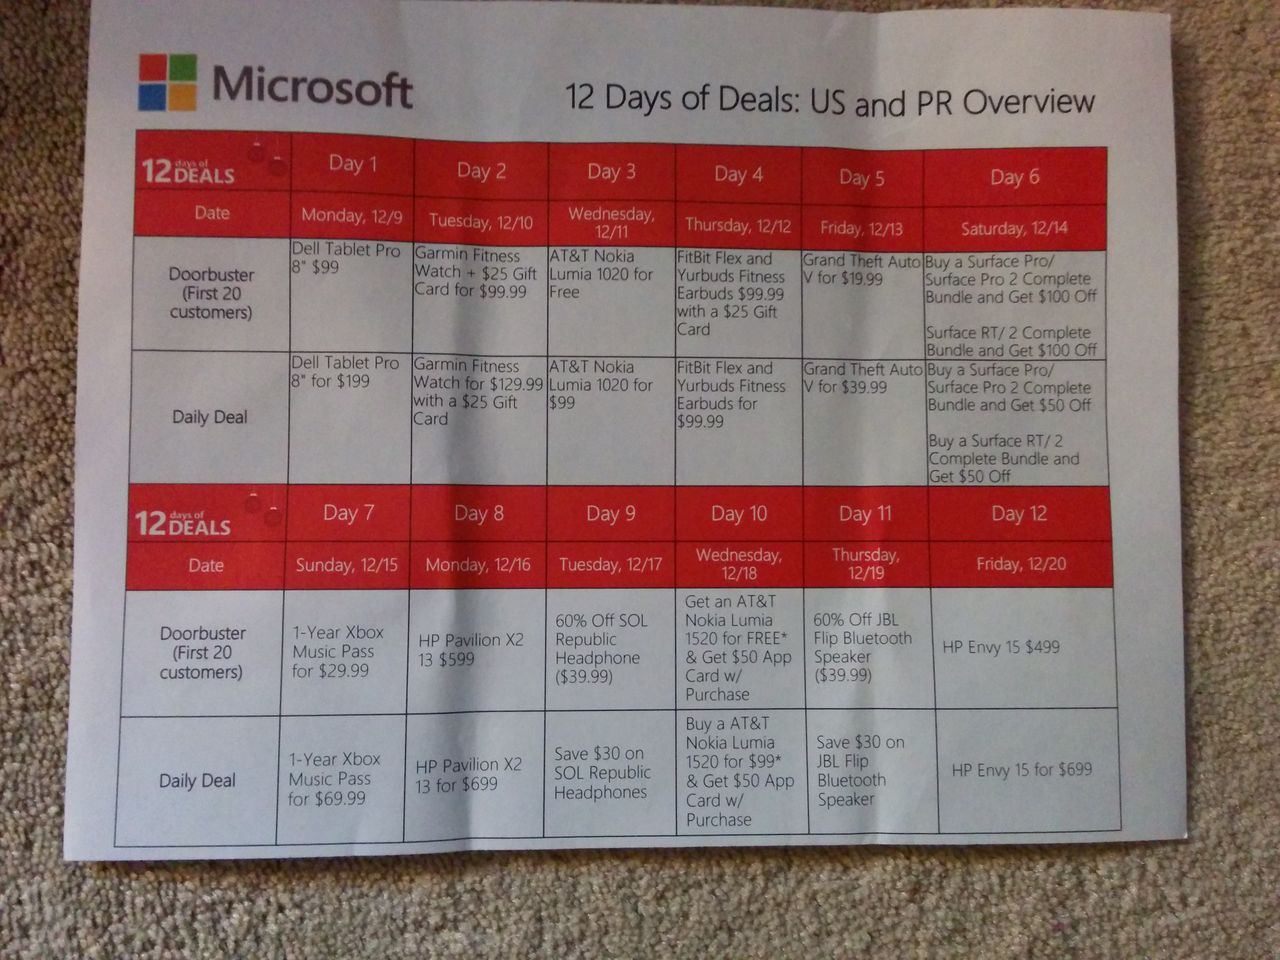 12DaysList Microsoft Store 12 Days of Deals promotion in the US allegedly leaks